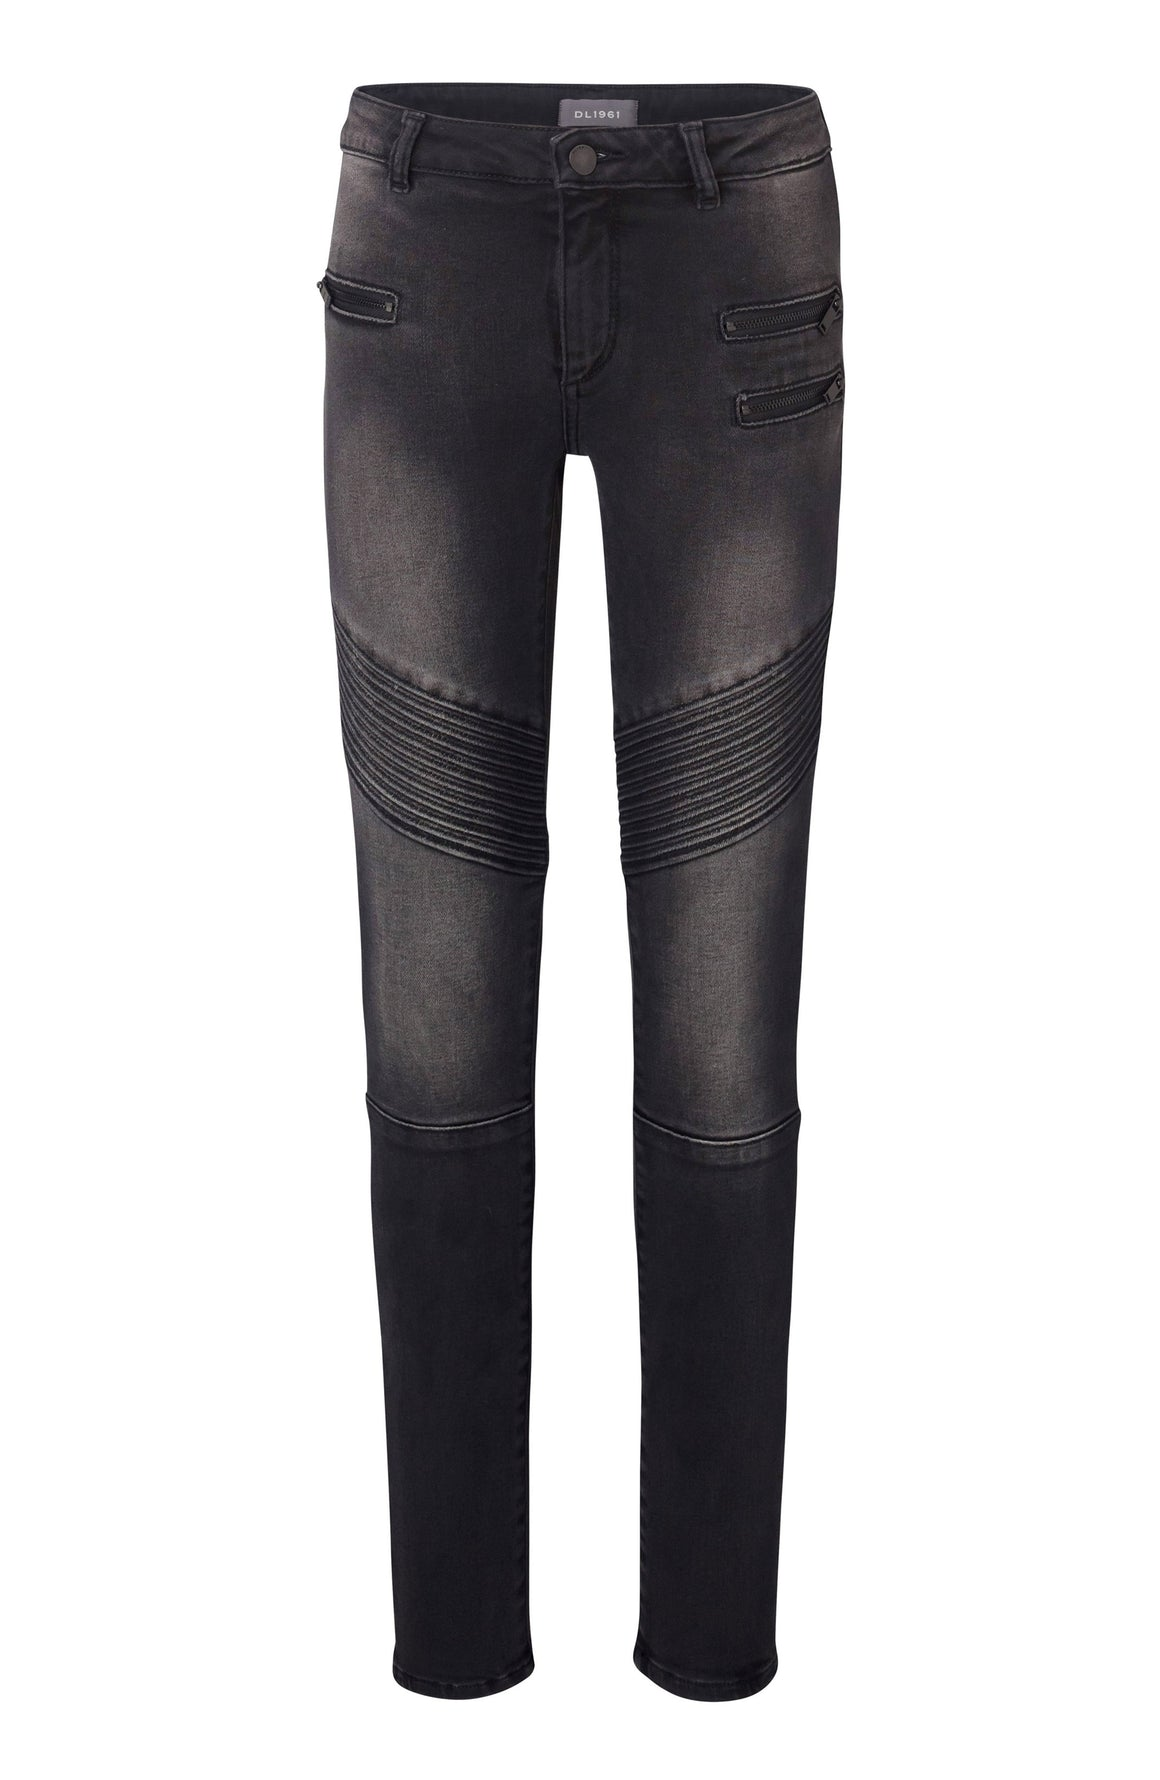 DL1961 Chloe Skinny Moto Black Denim Jean in Harley Wash